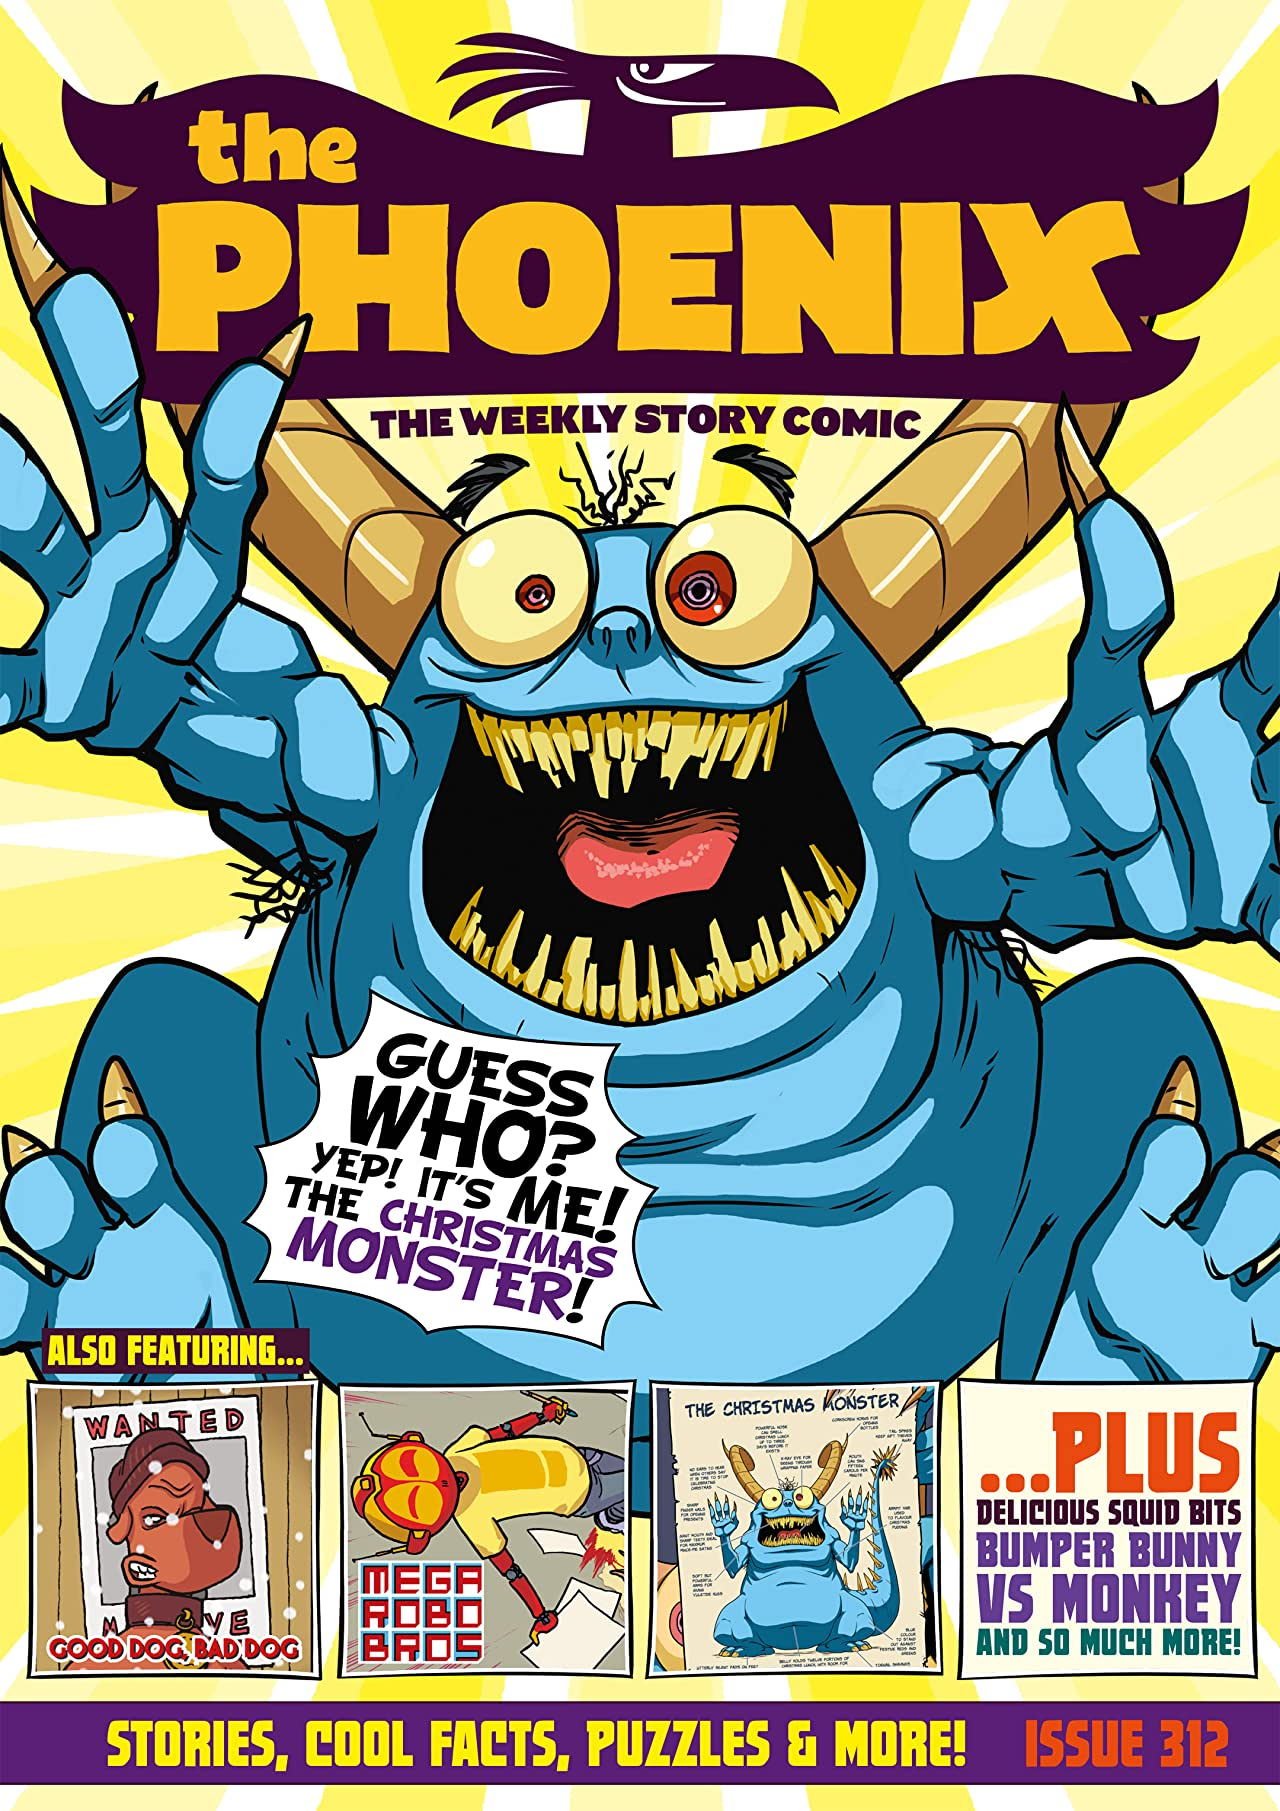 The Phoenix #312: The Weekly Story Comic